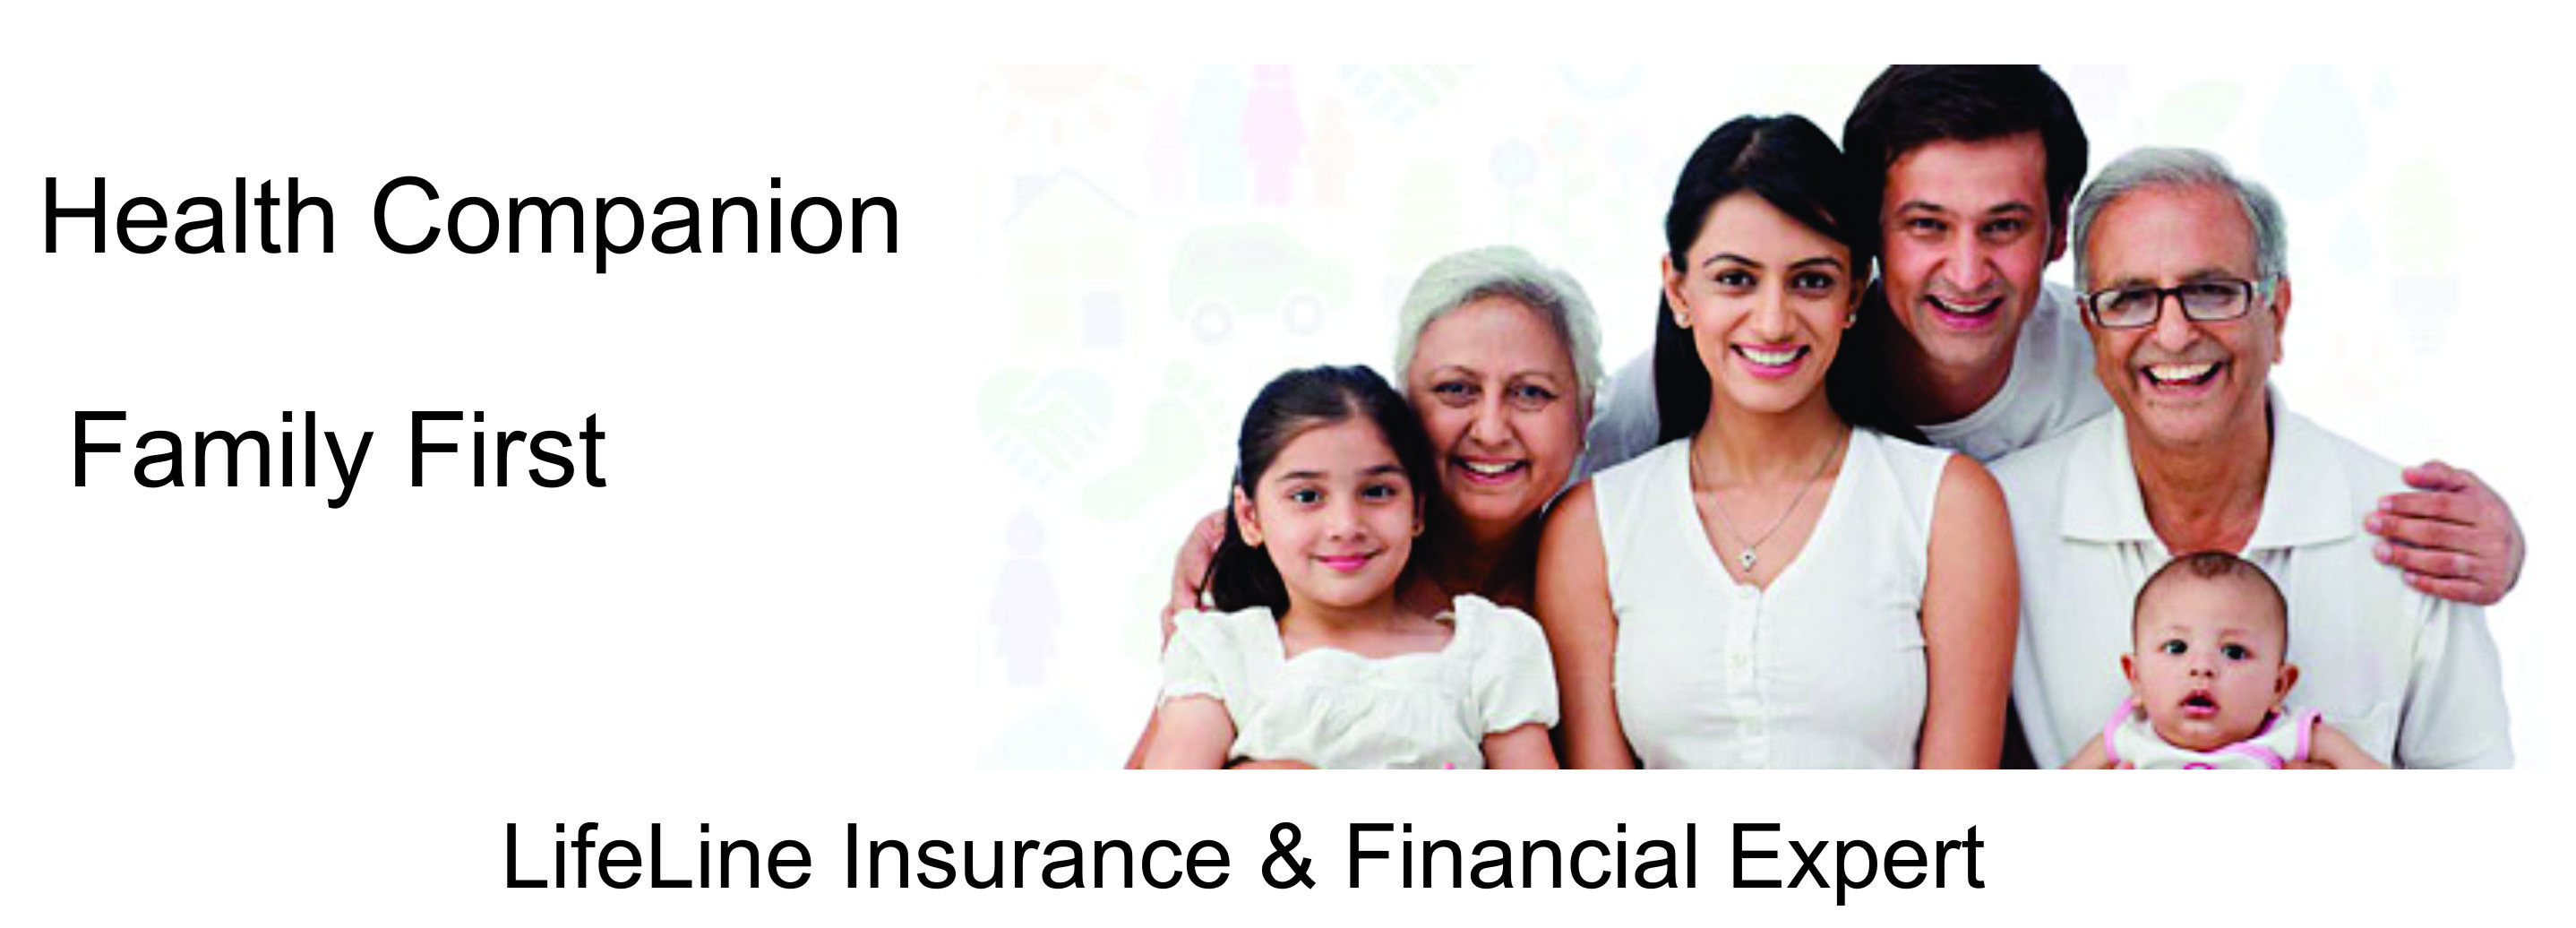 Health Companion Family First A unique Plan which is